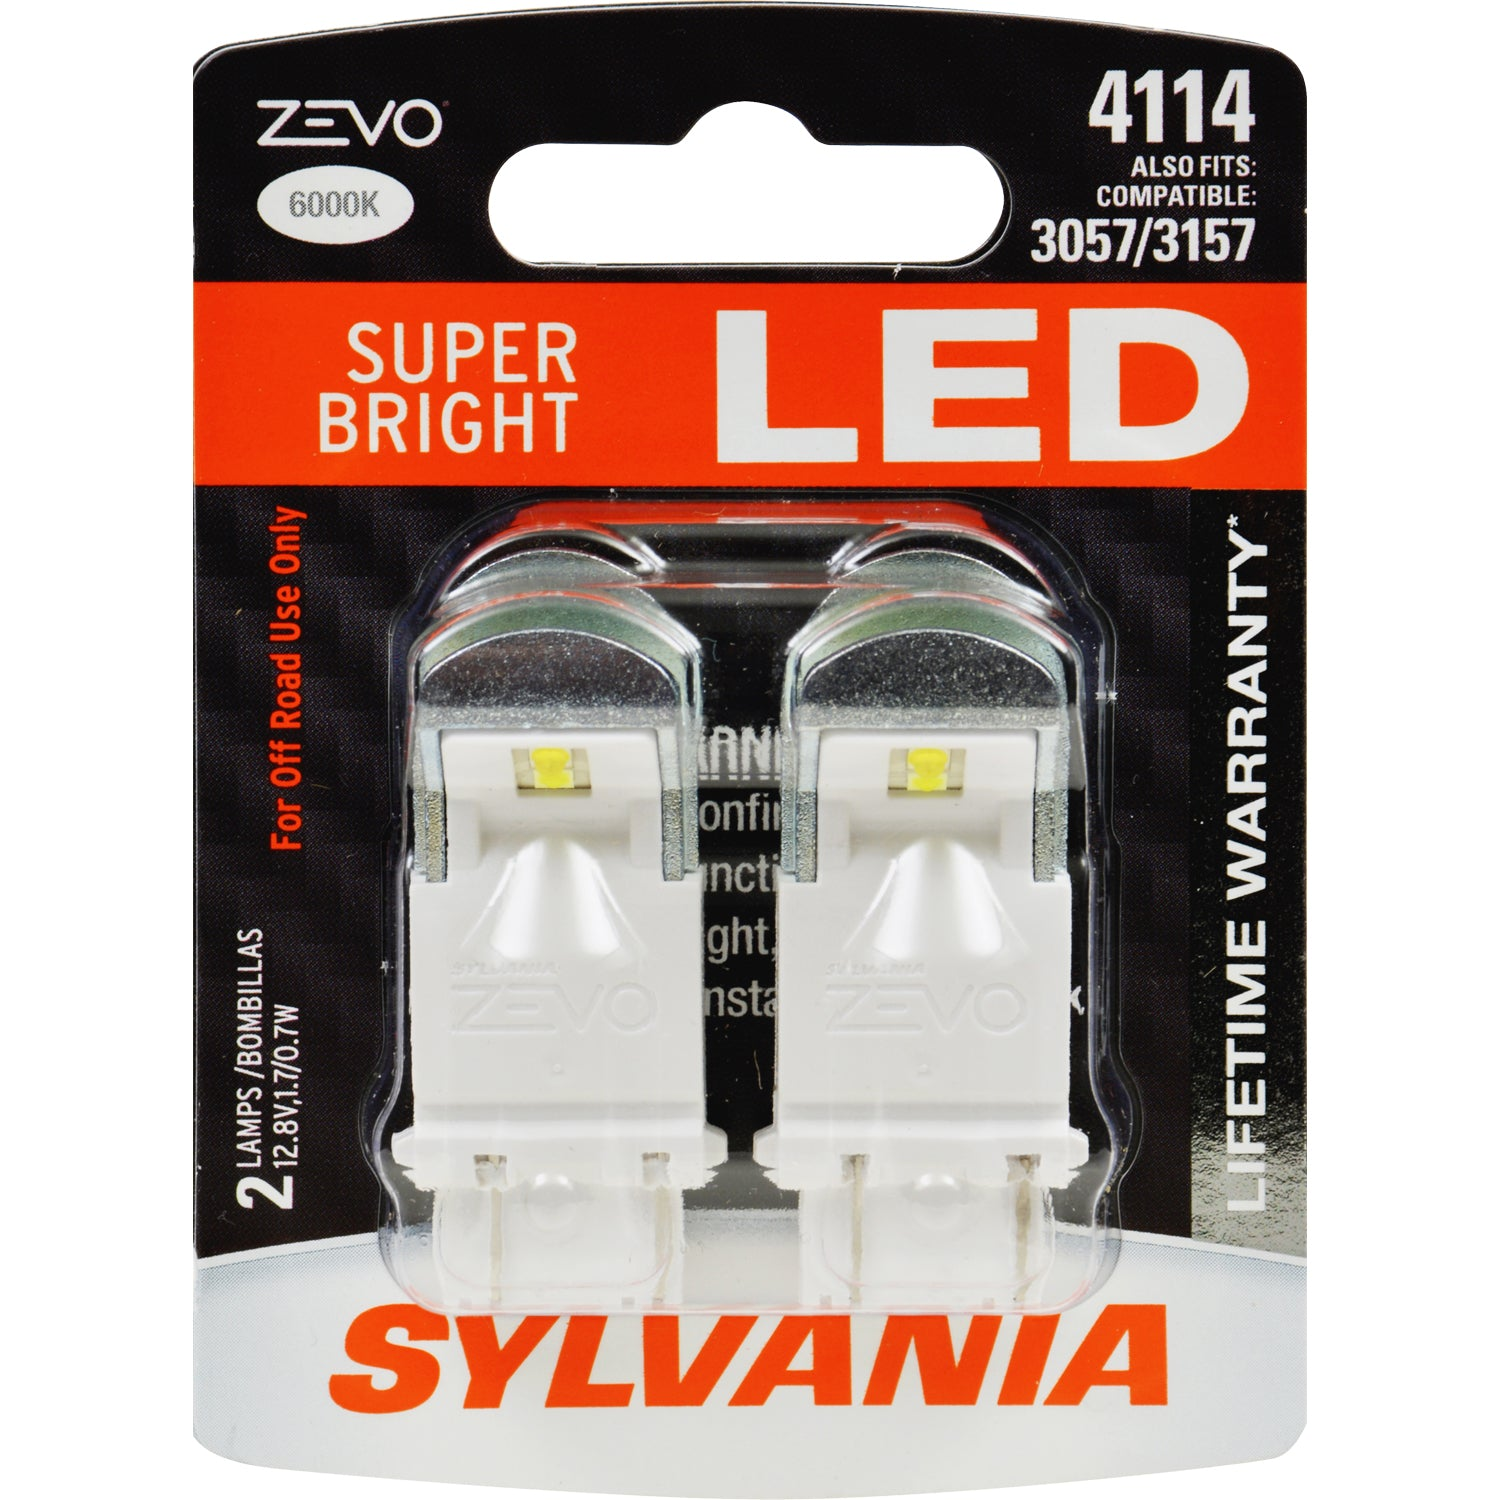 2-PK SYLVANIA ZEVO 4114 White LED Automotive Bulb